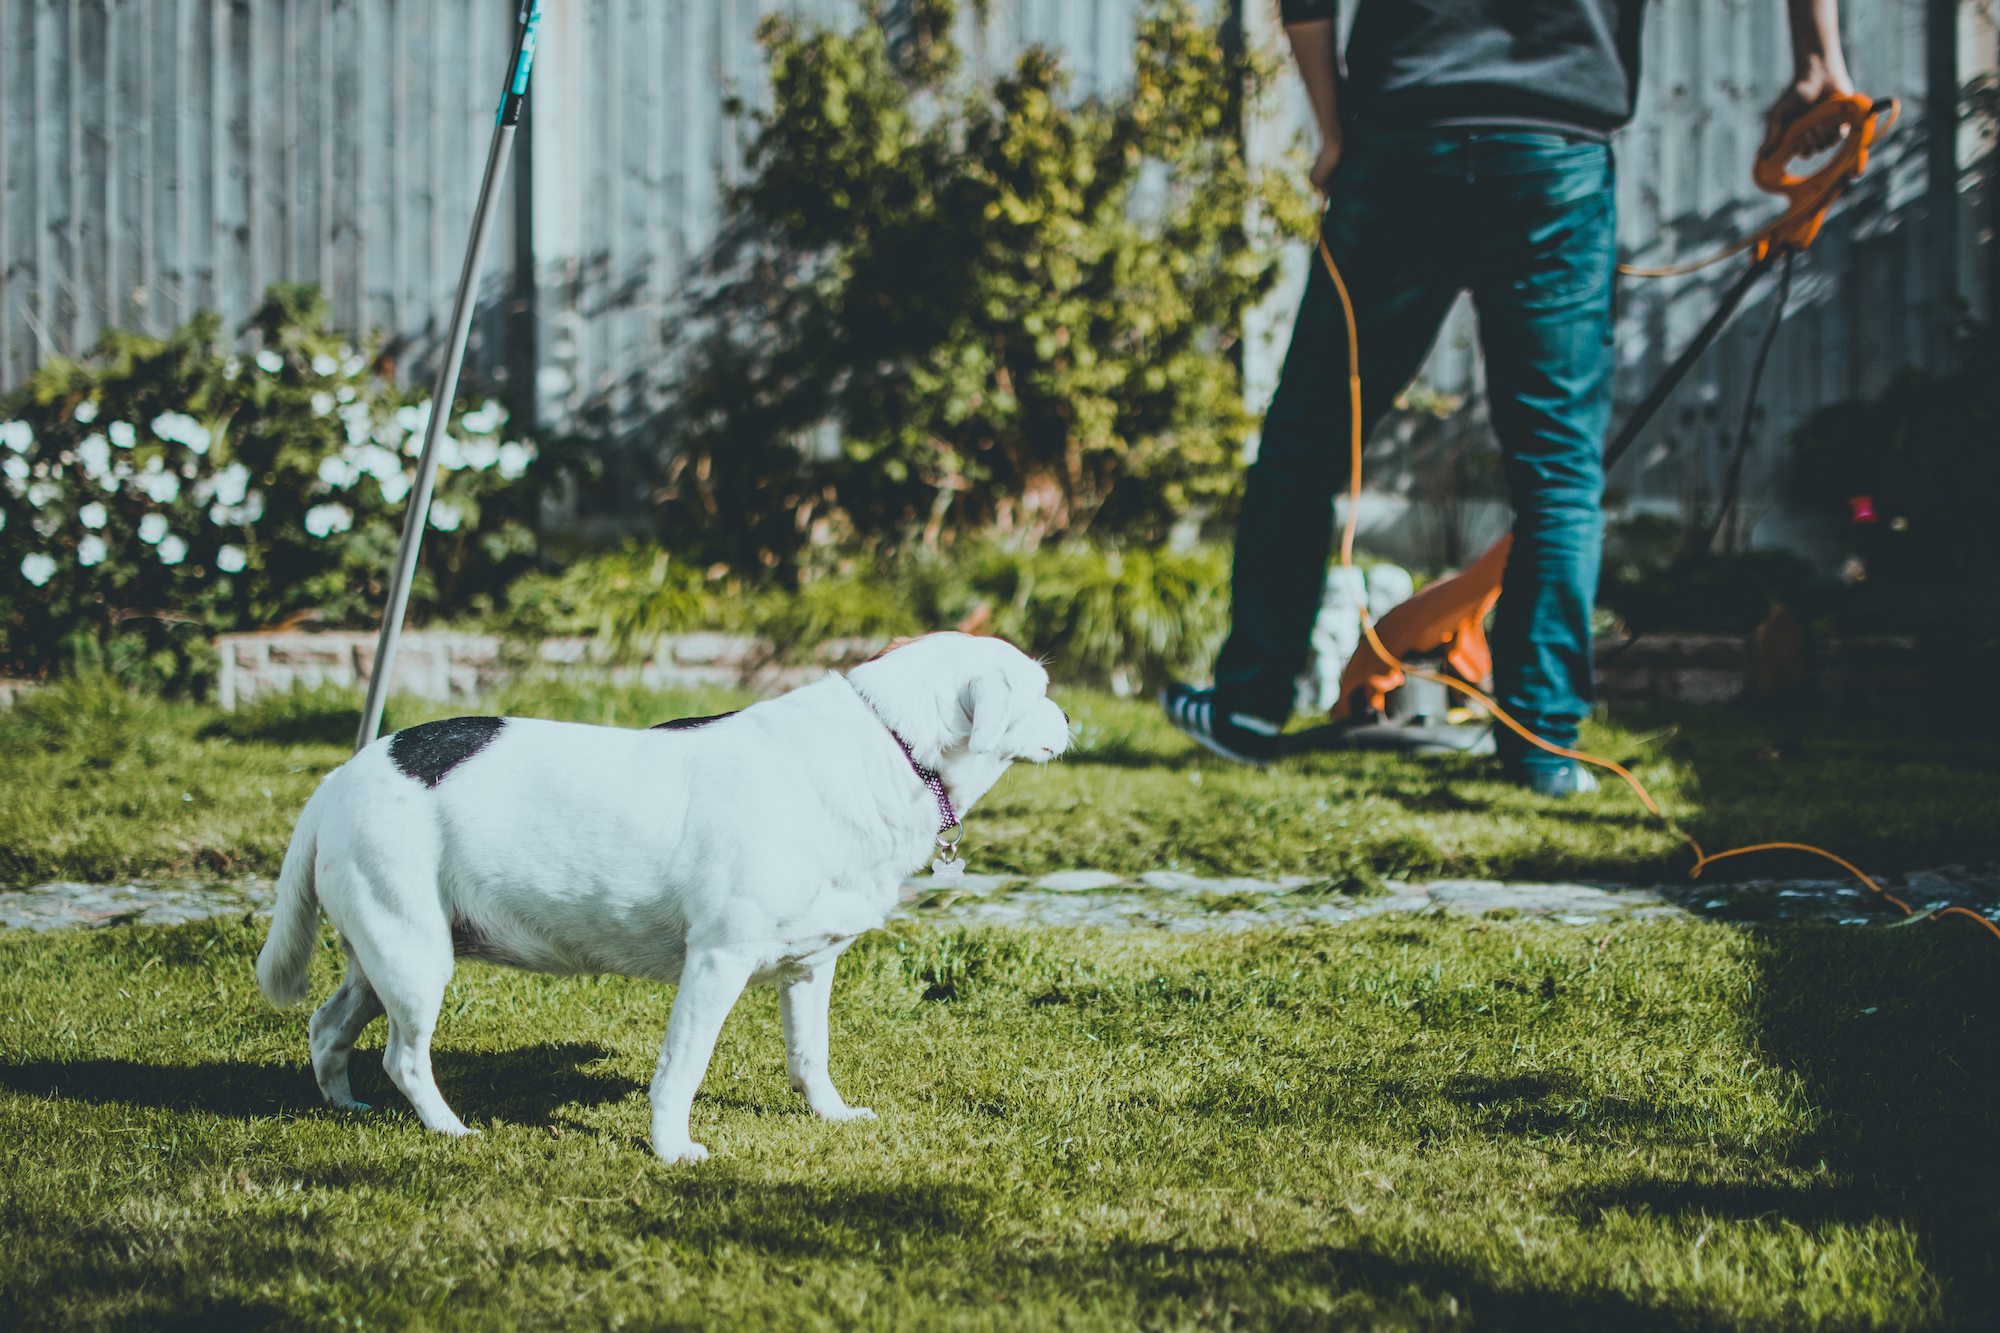 White dog in backyard with person mowing lawn